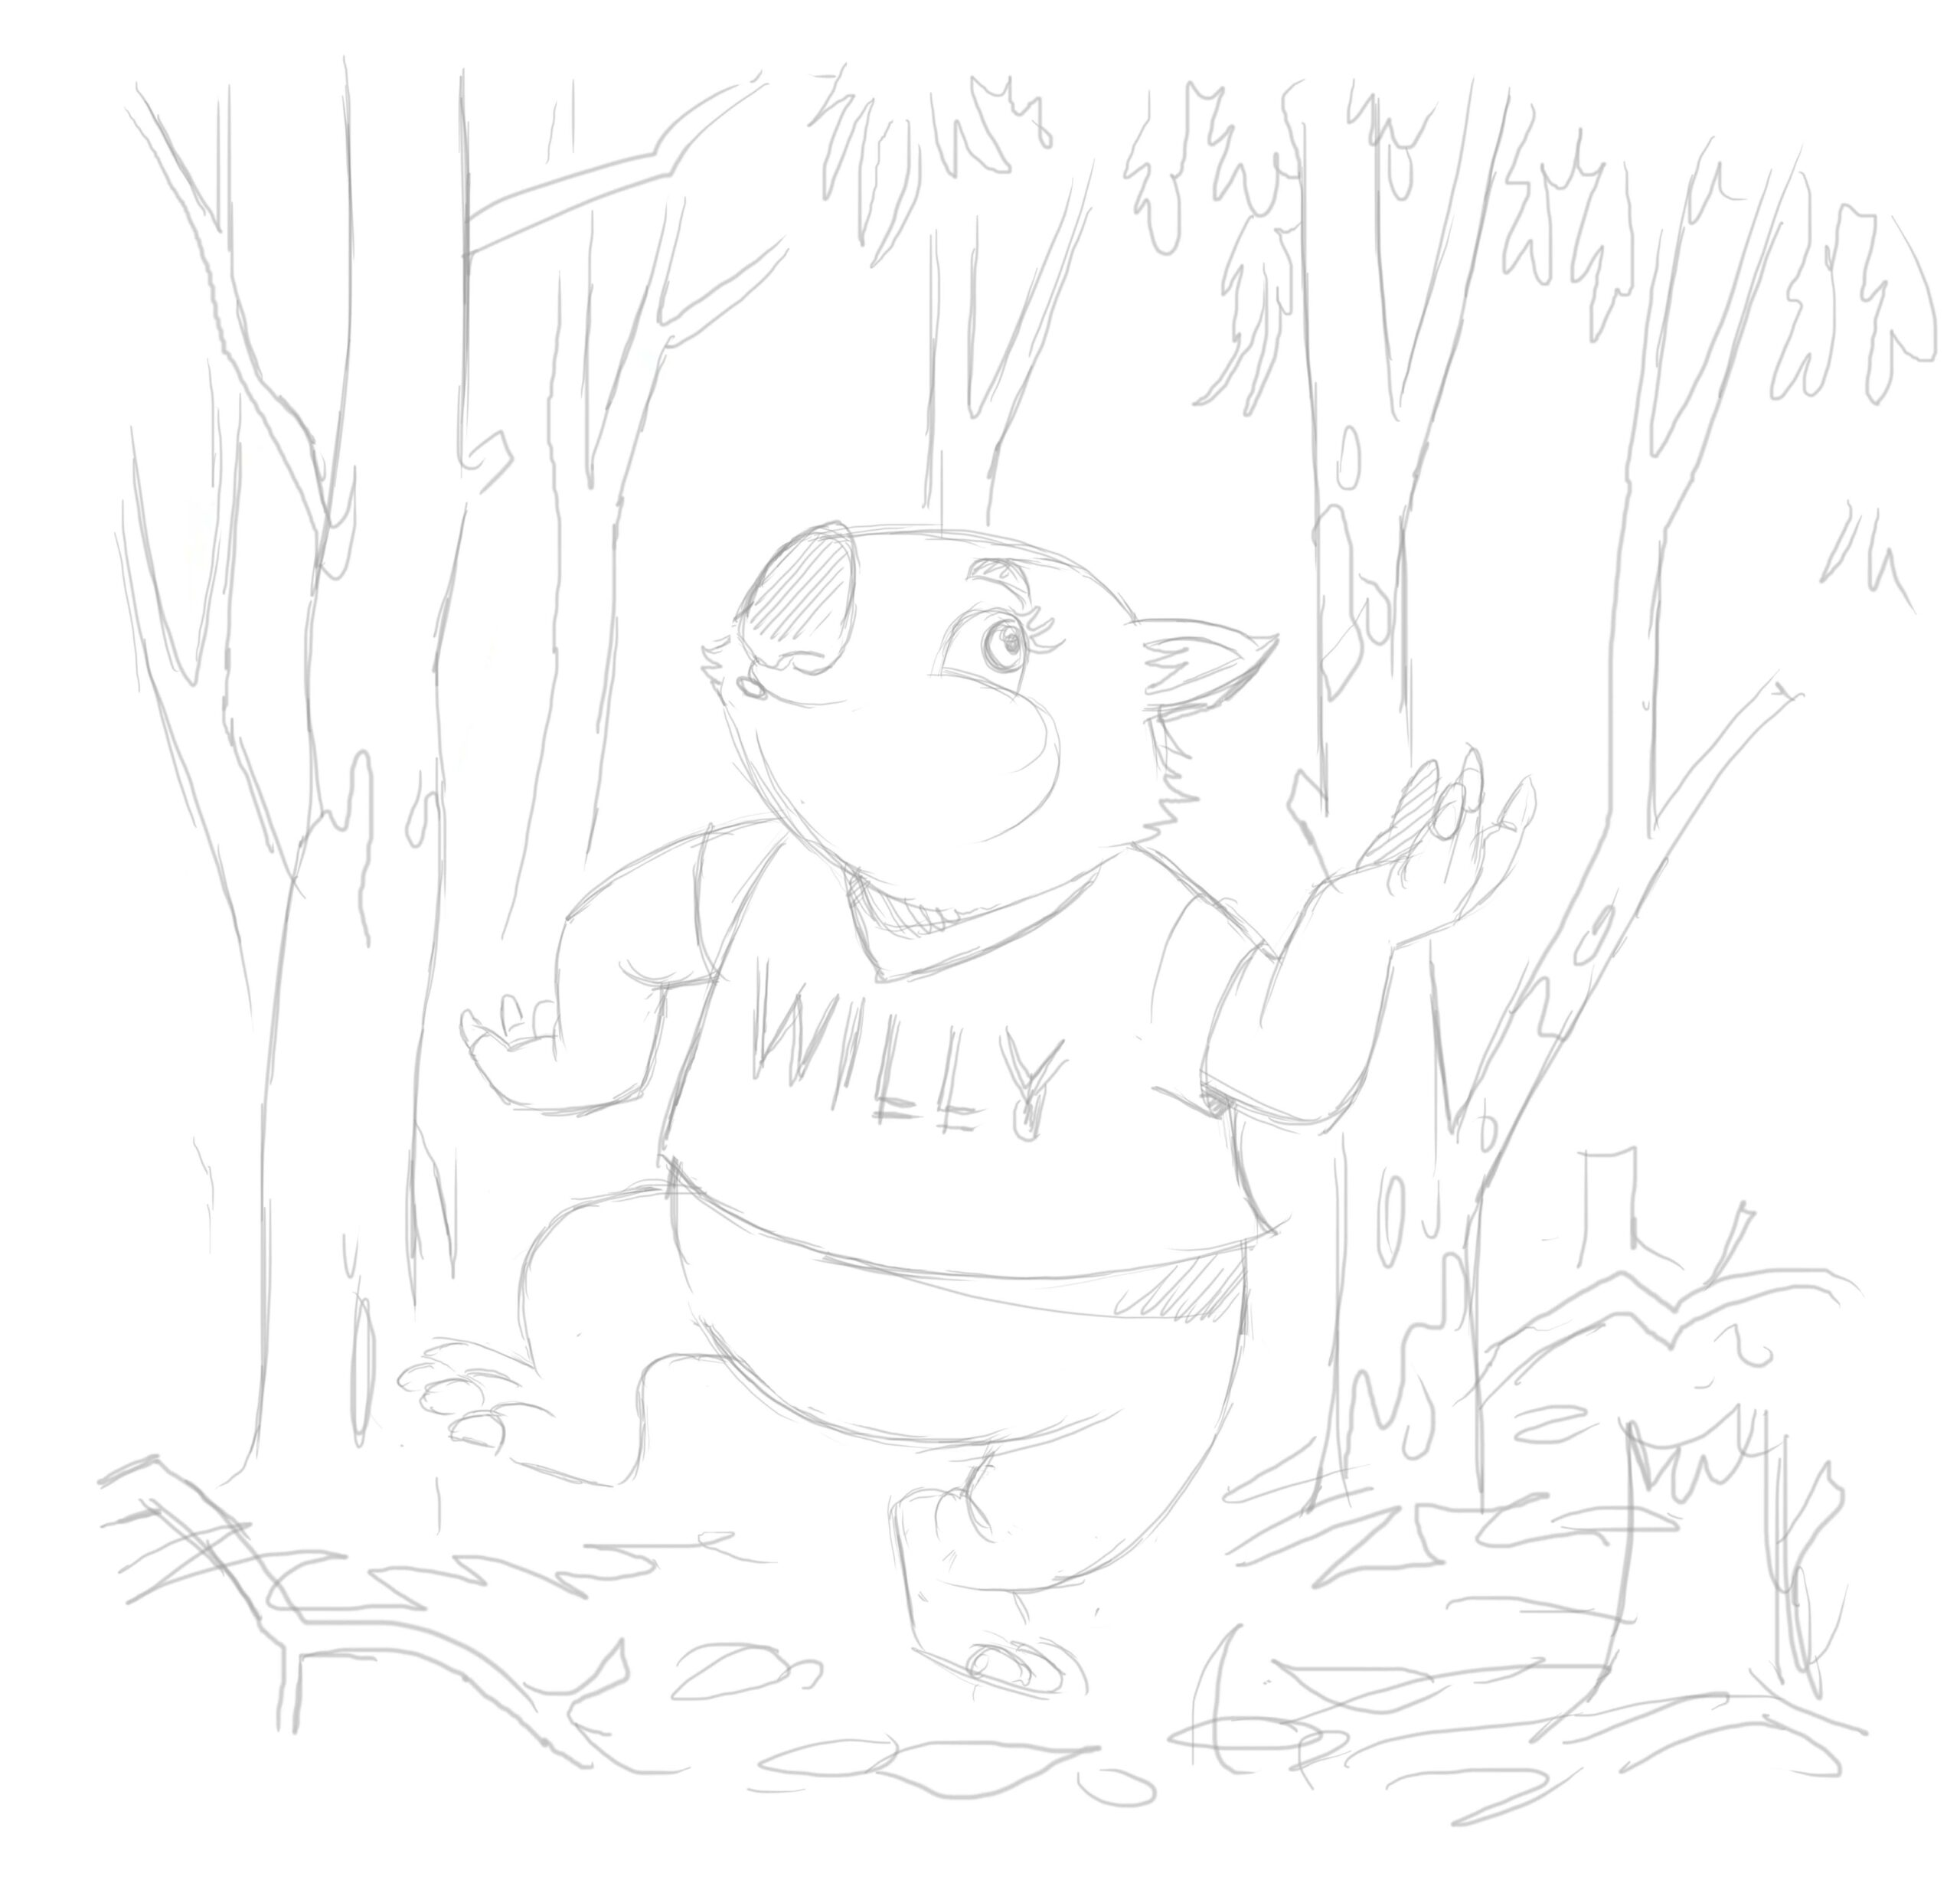 Willy Wombat sketch - Magical Mountains